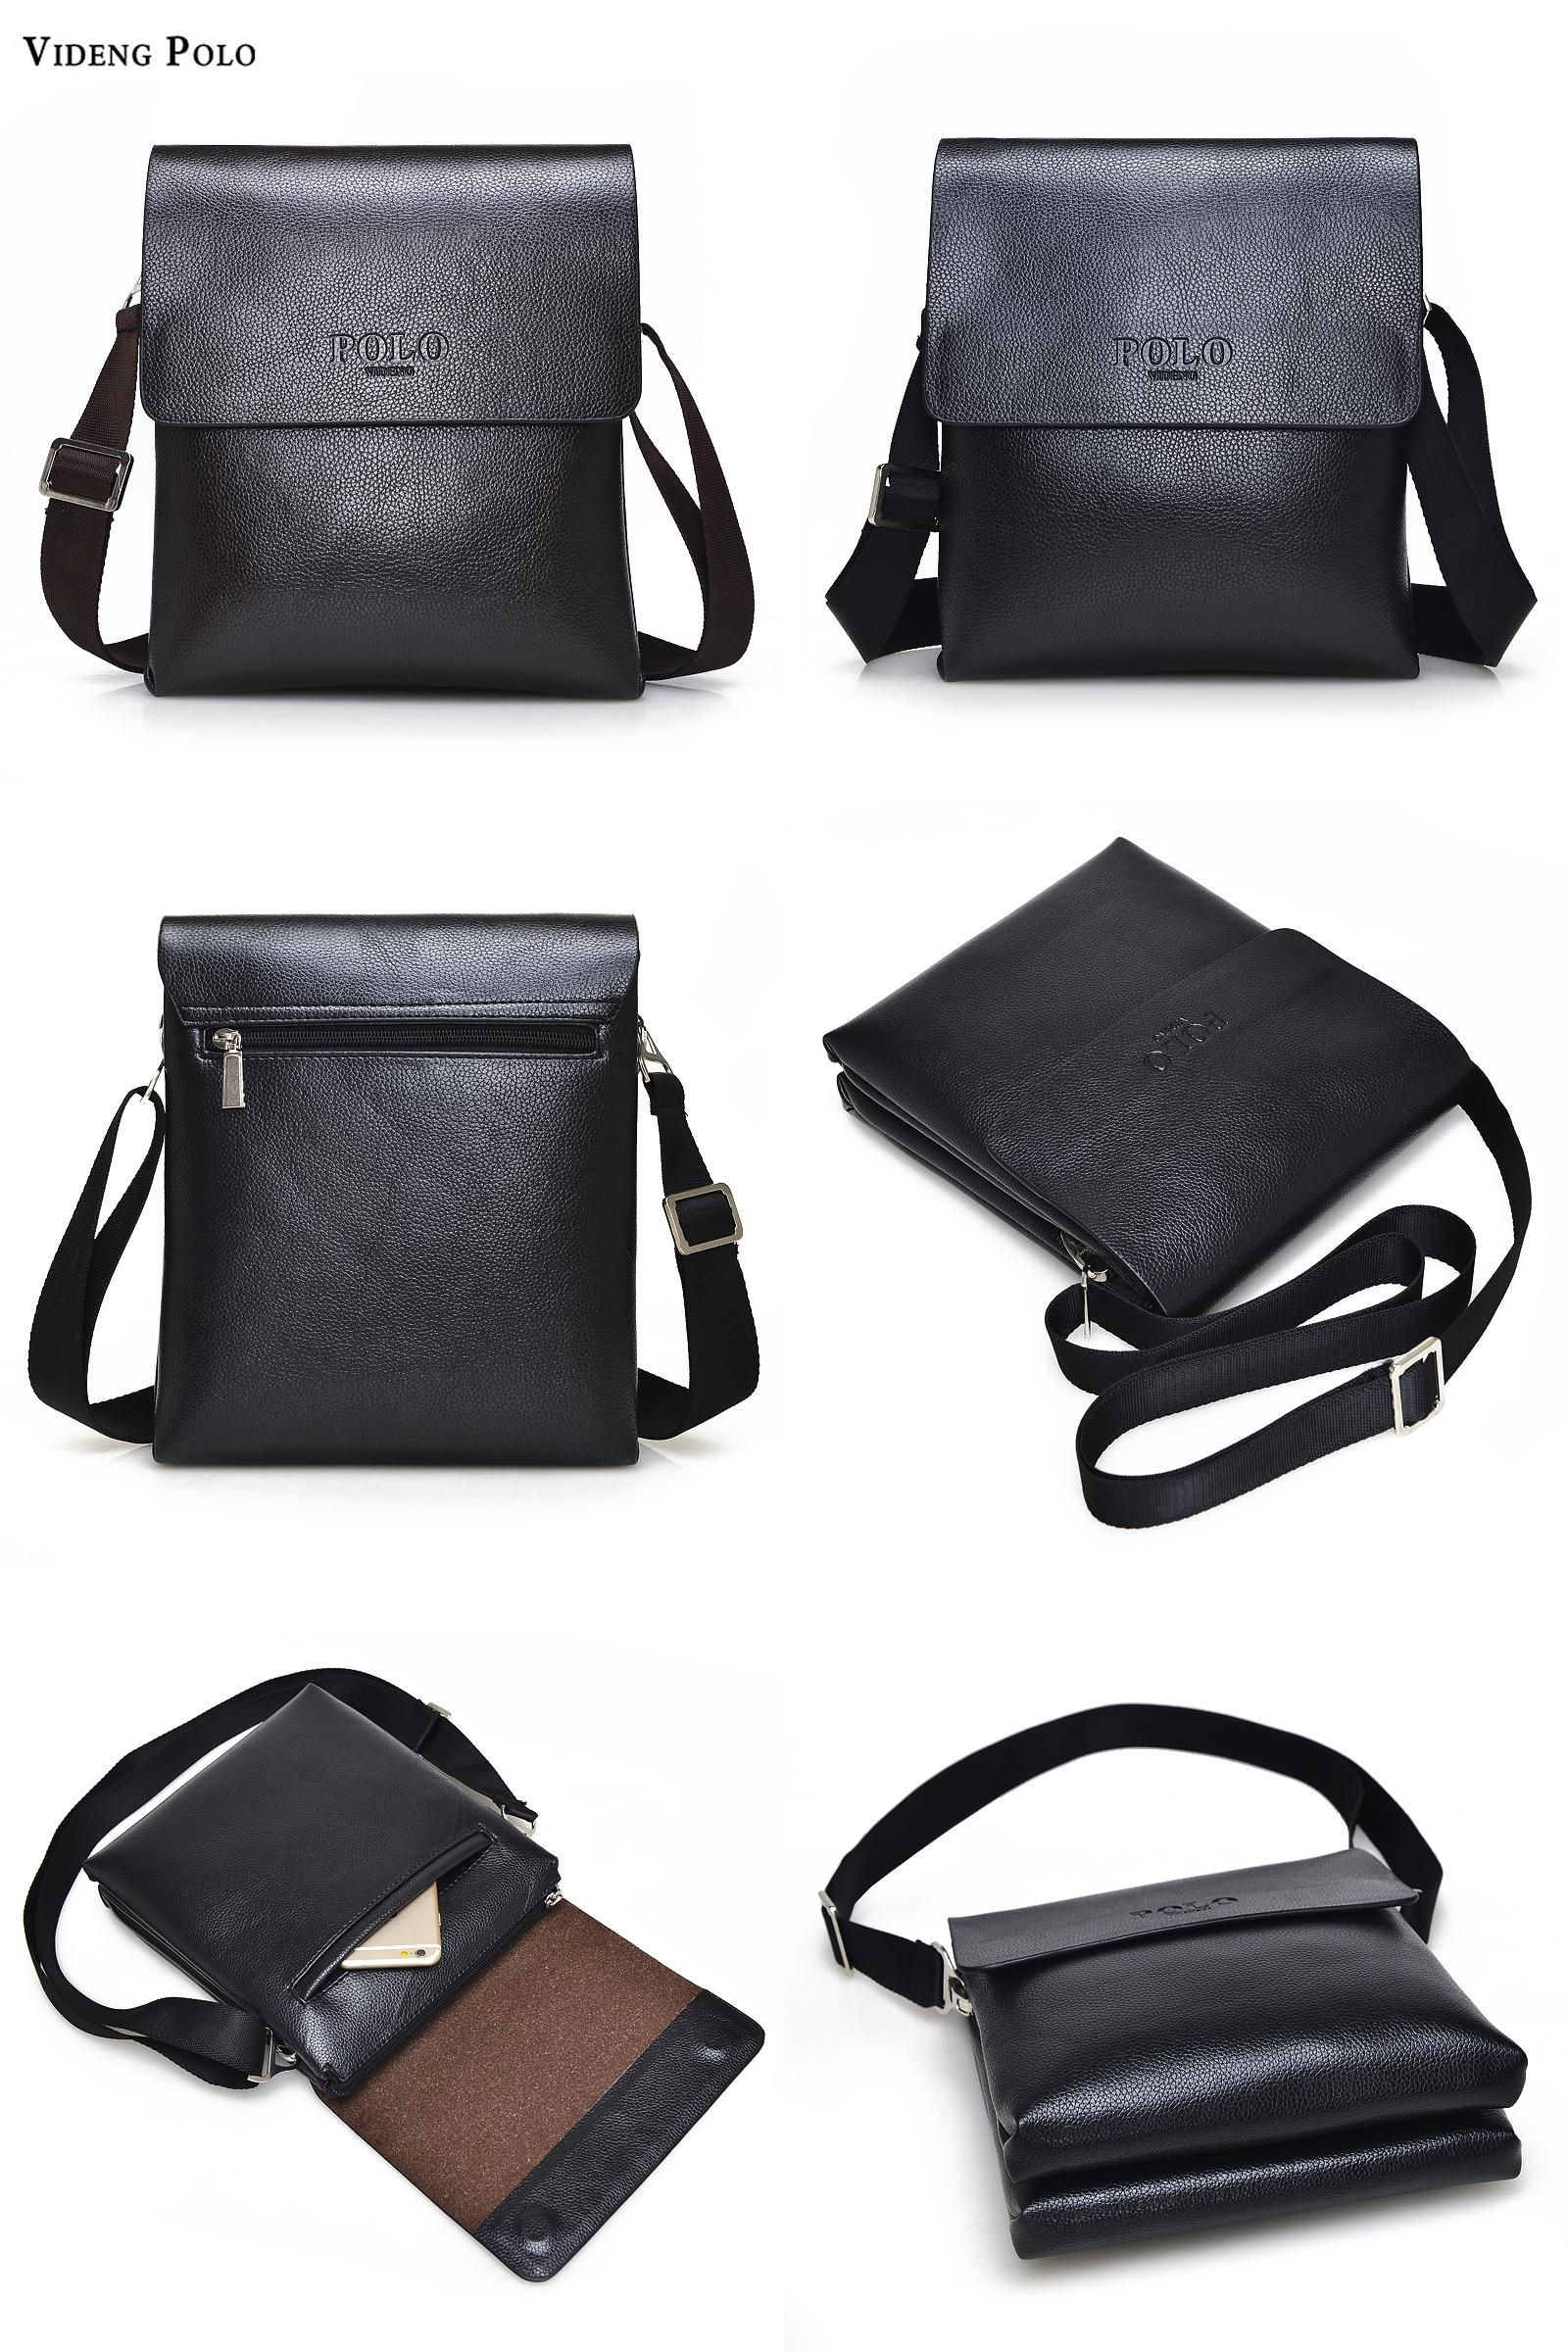 342df2000d  Visit to Buy  VIDENG POLO Hot Sell Brand Solid Double Pocket Soft  Crossbody Bag